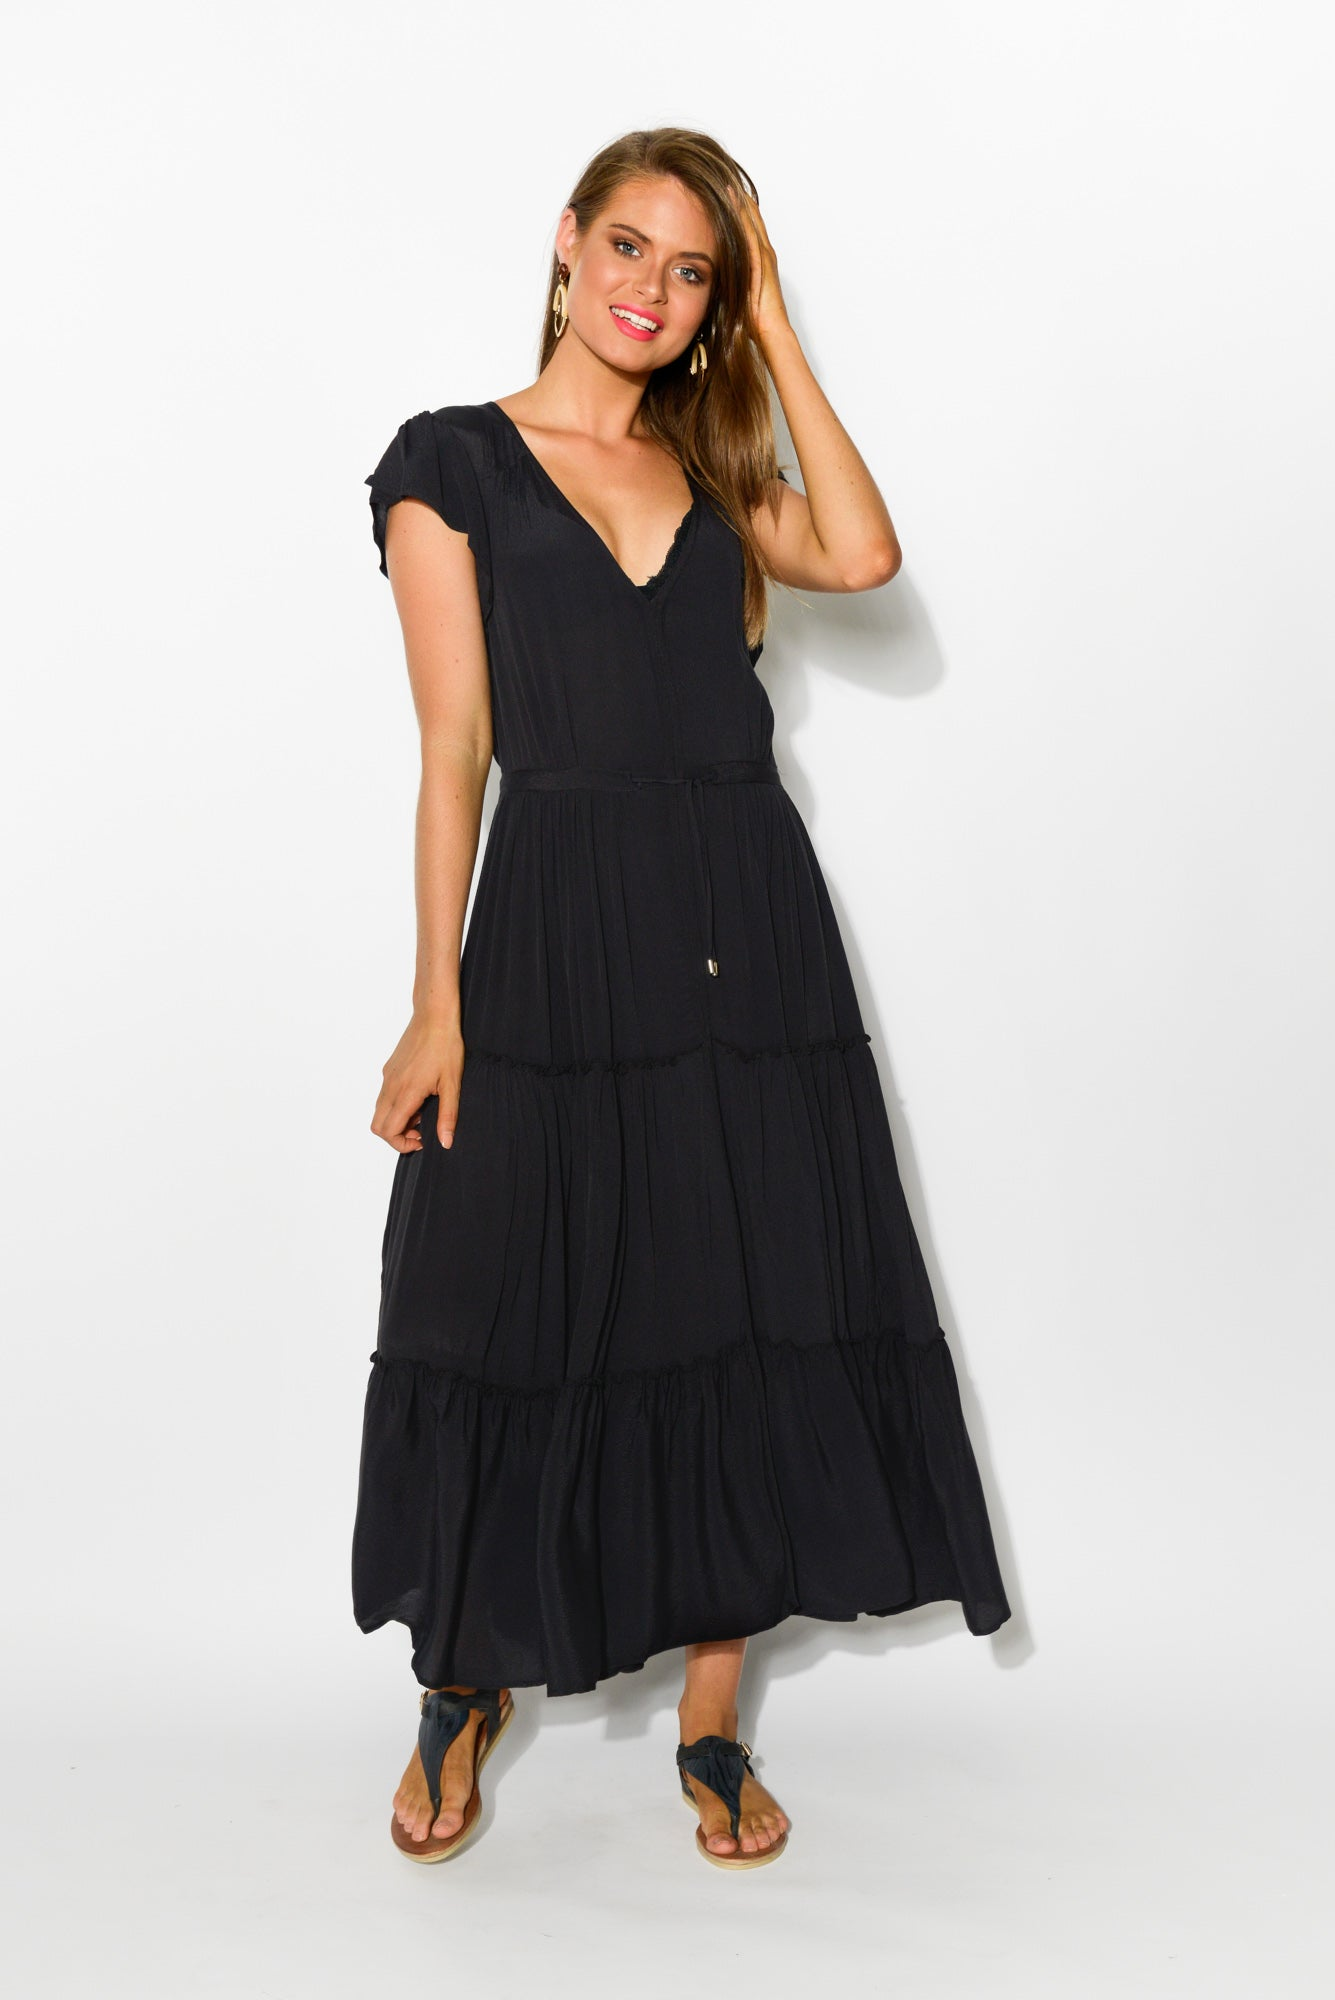 Sundown Black Maxi Dress - Blue Bungalow